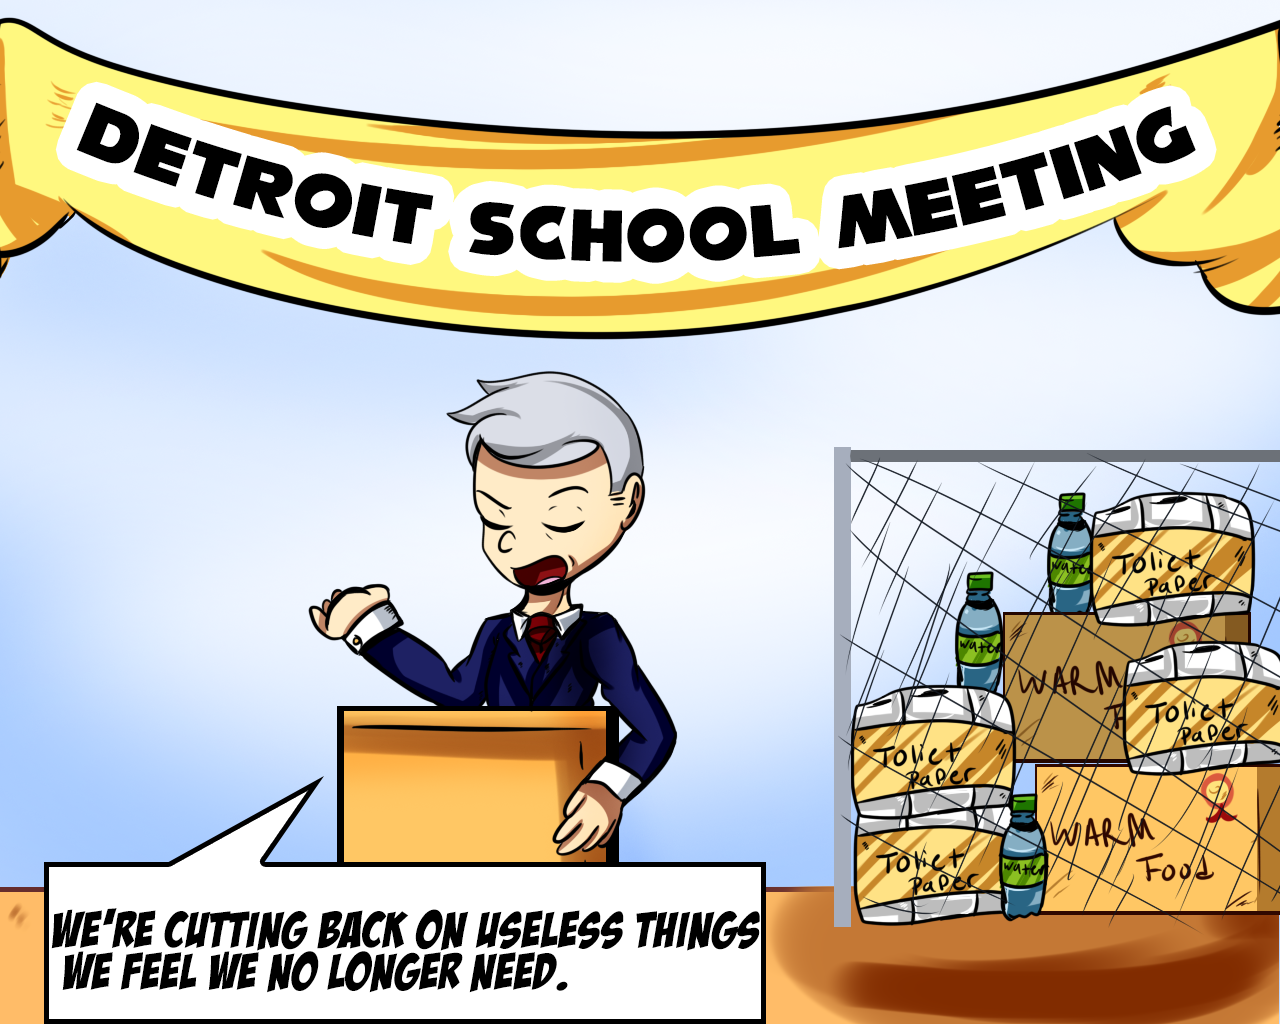 Comic showing Gov. Snyder announcing new Detroit school district while behind him items that are being cut from the budget are shown such as toilet paper and books.